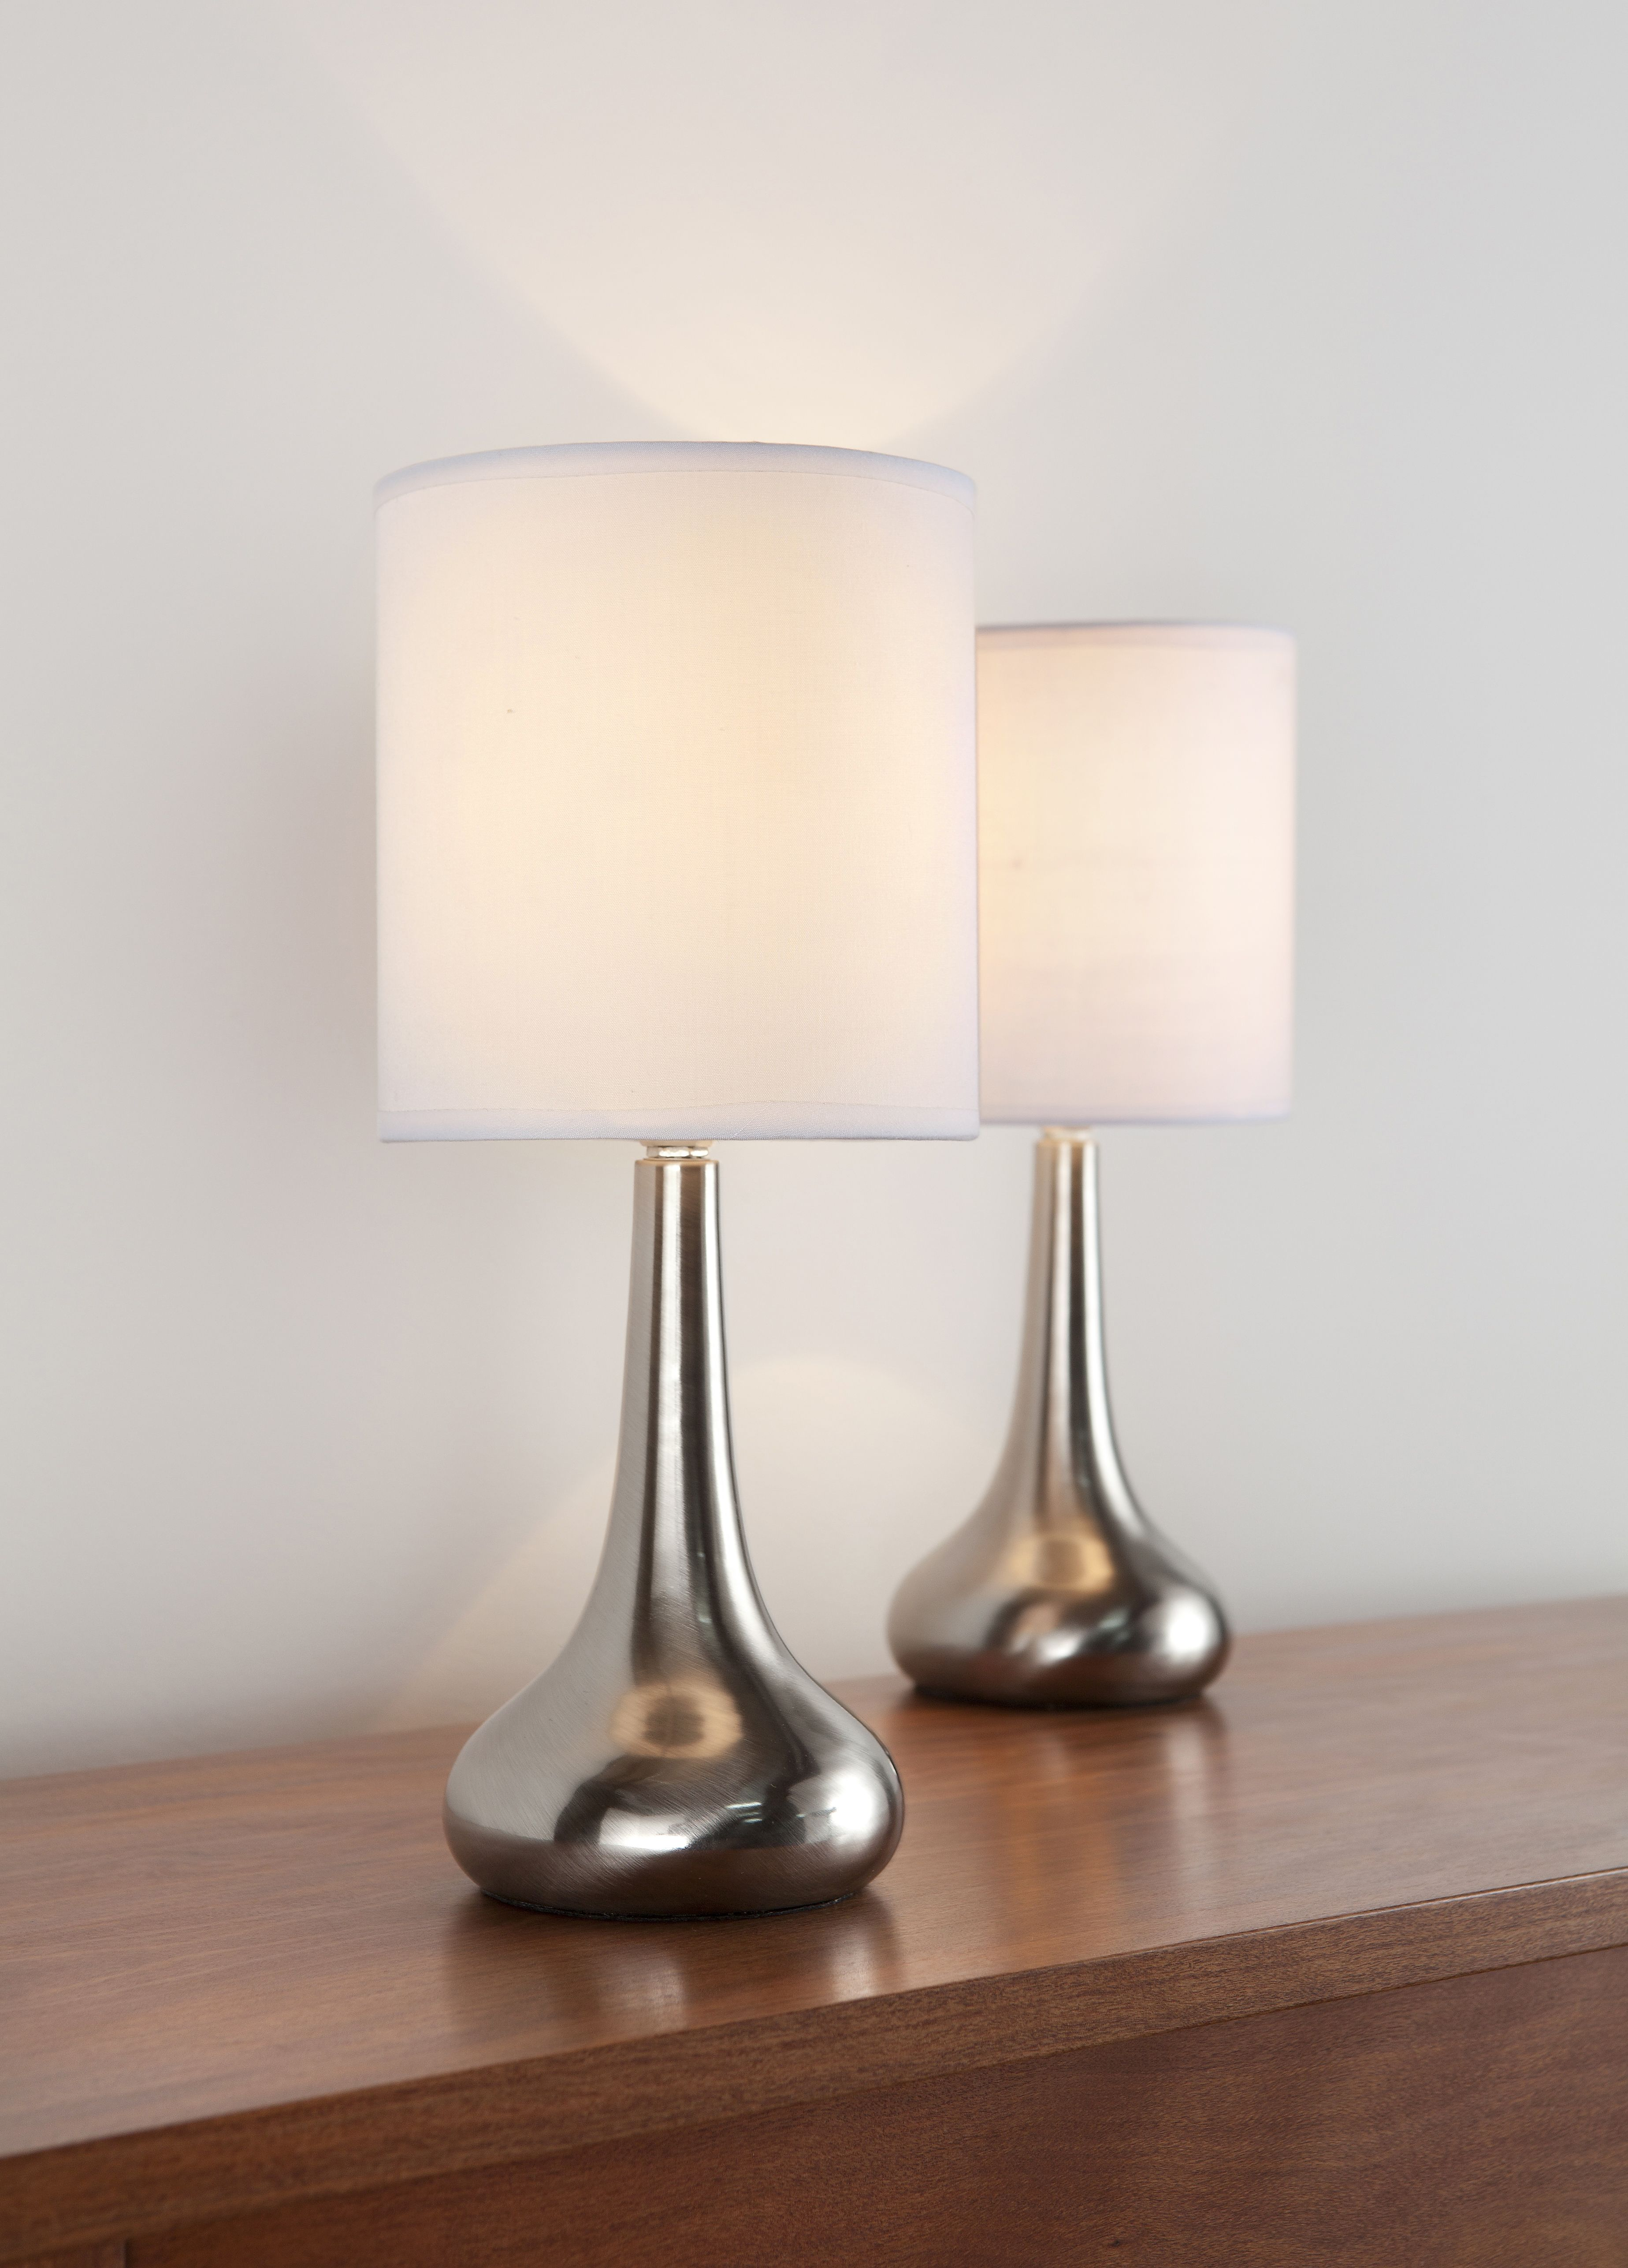 Brilliant flute touch lamps 2 pack bunnings warehouse